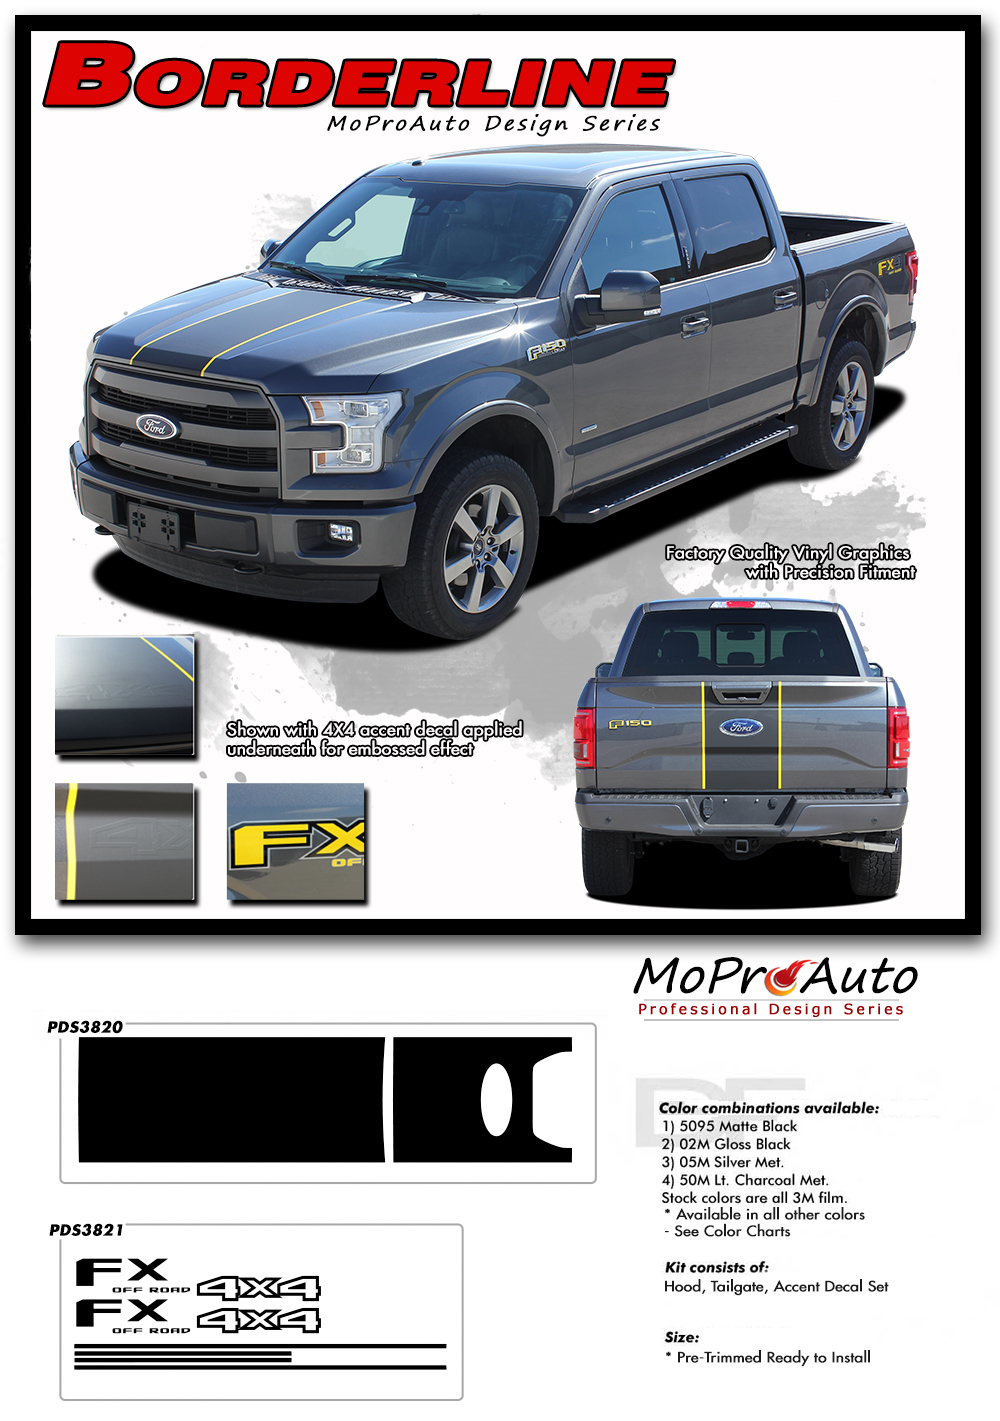 Ford F-Series F-150 BORDERLINE MoProAuto Pro Design Series Vinyl Graphics and Decals Kit